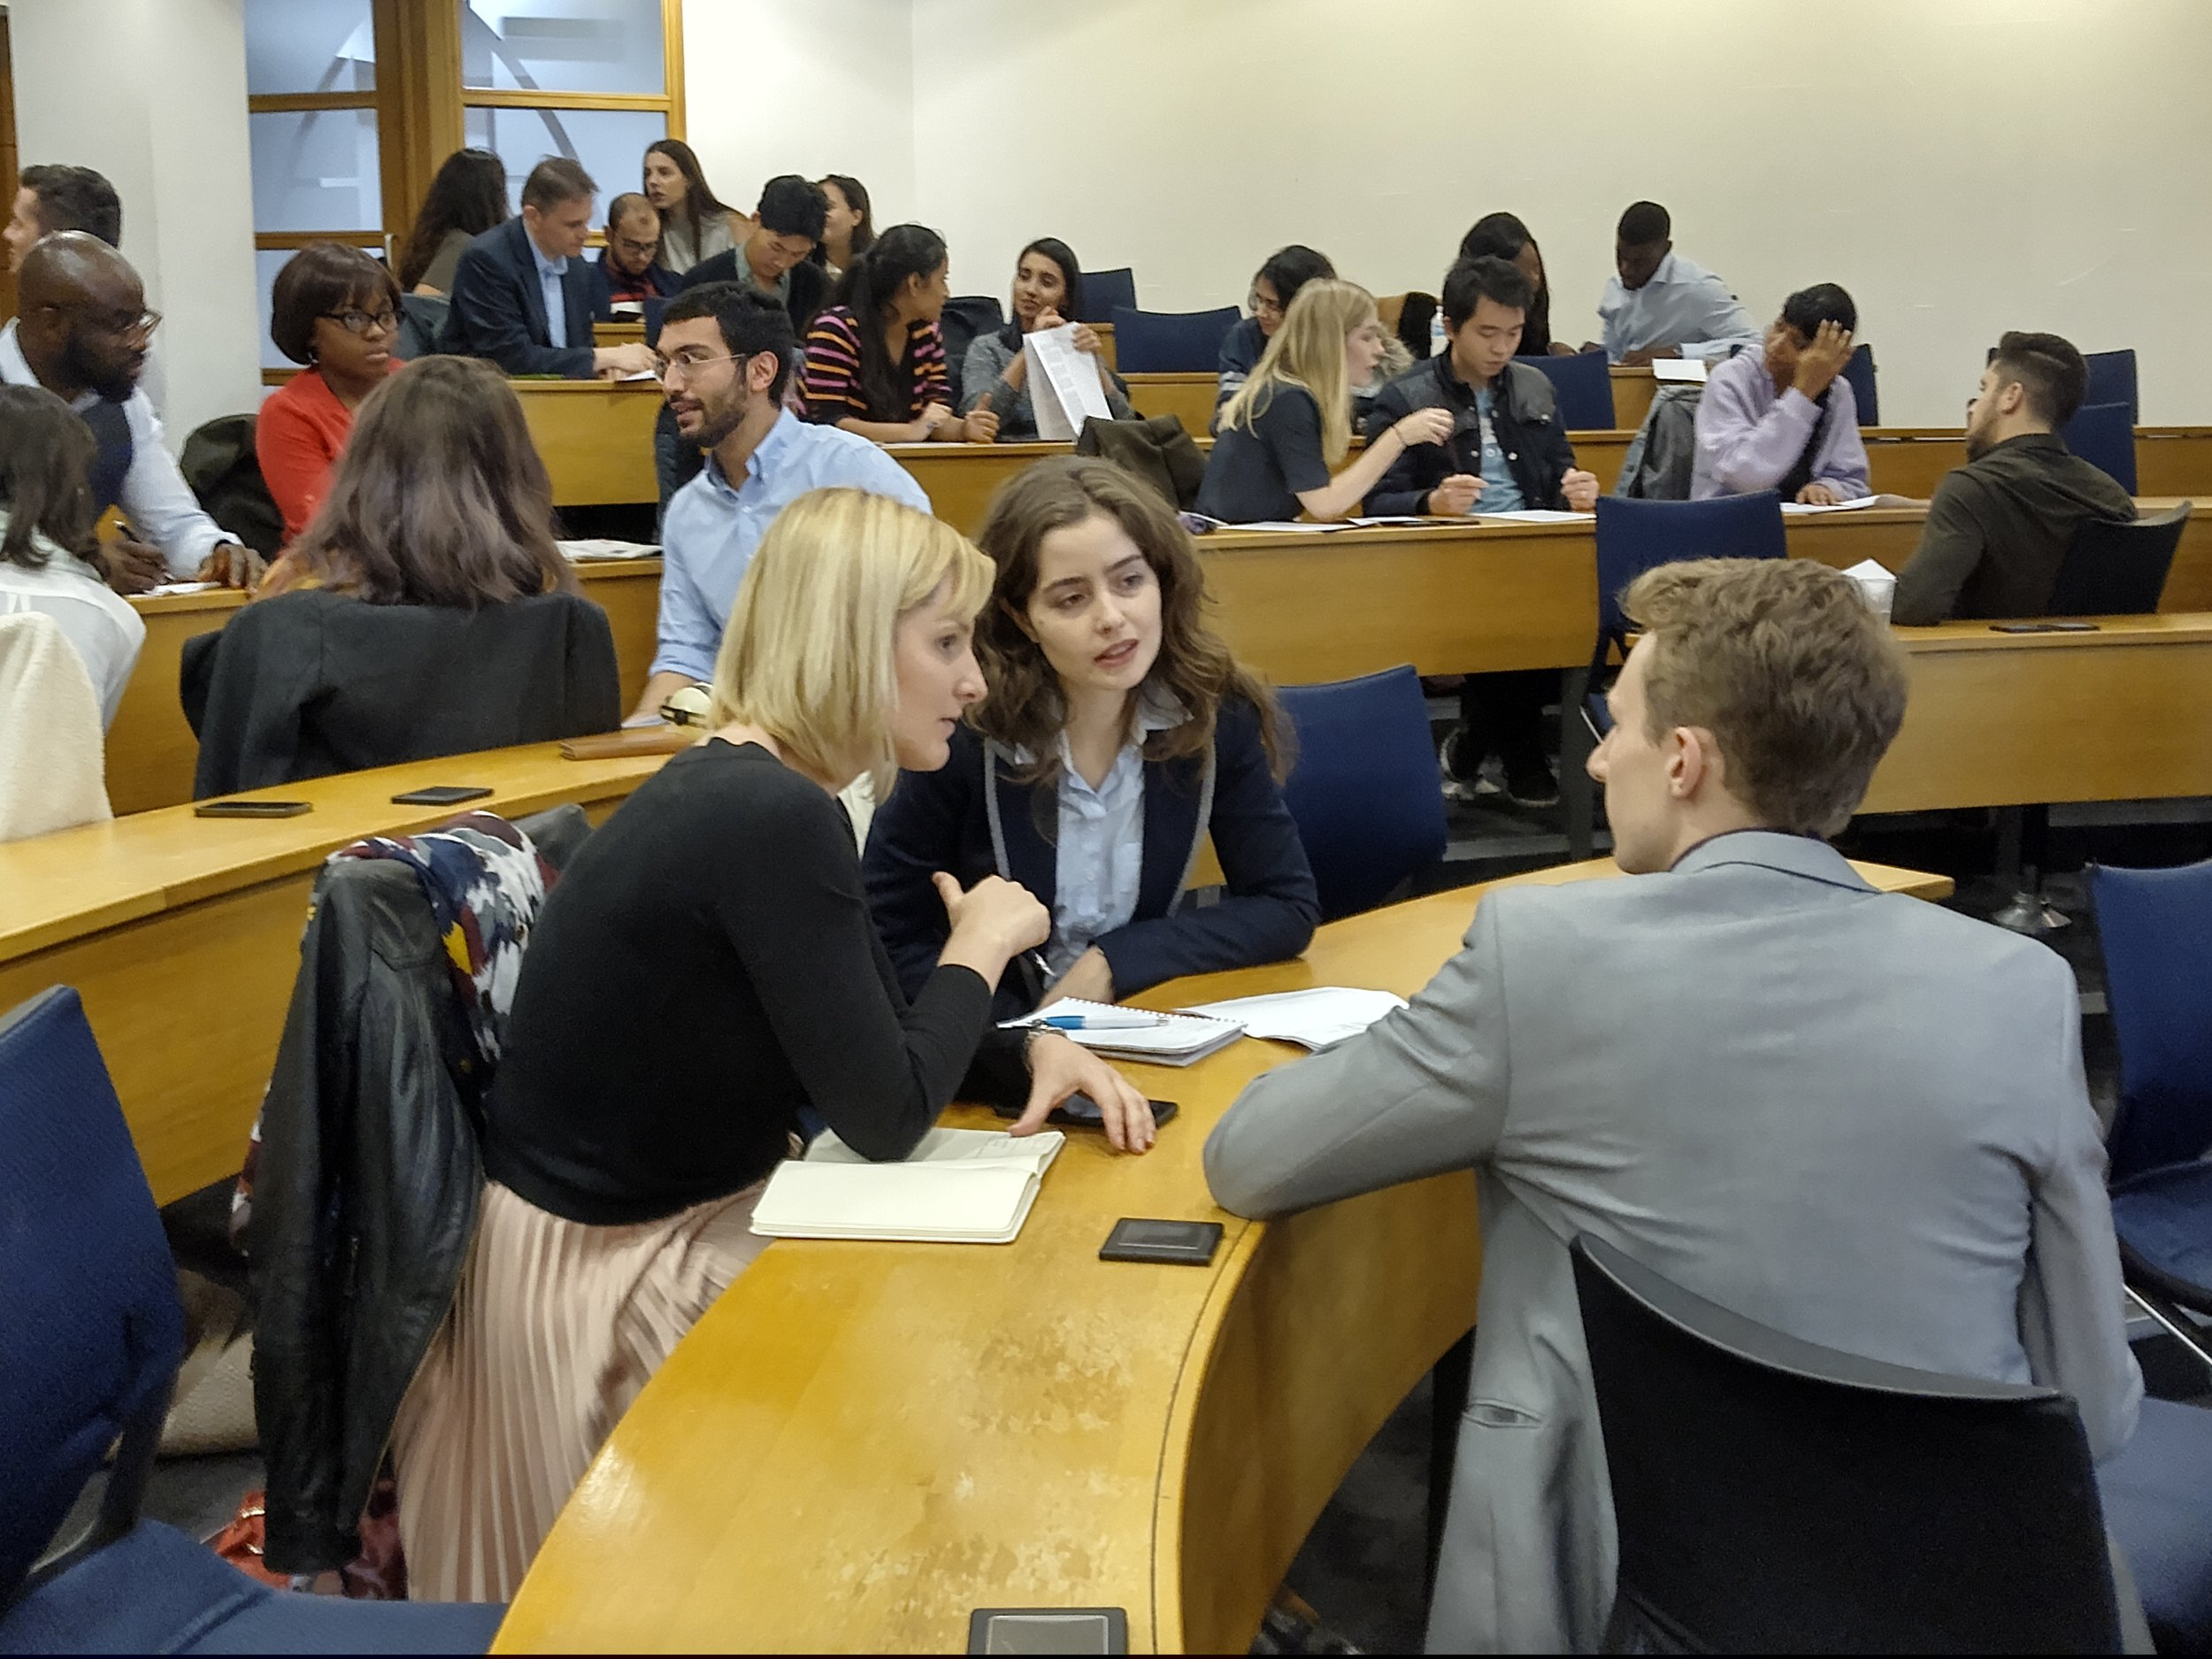 Participants in discussion at the SIULondon workshop on November 16.